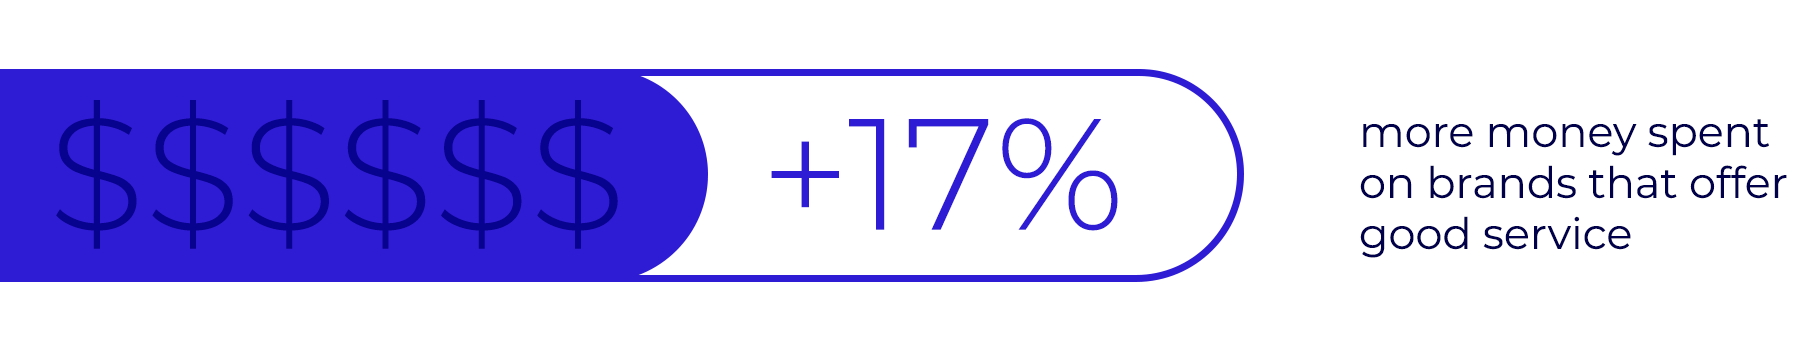 Customers spend 17% more on brands that offer good customer service.